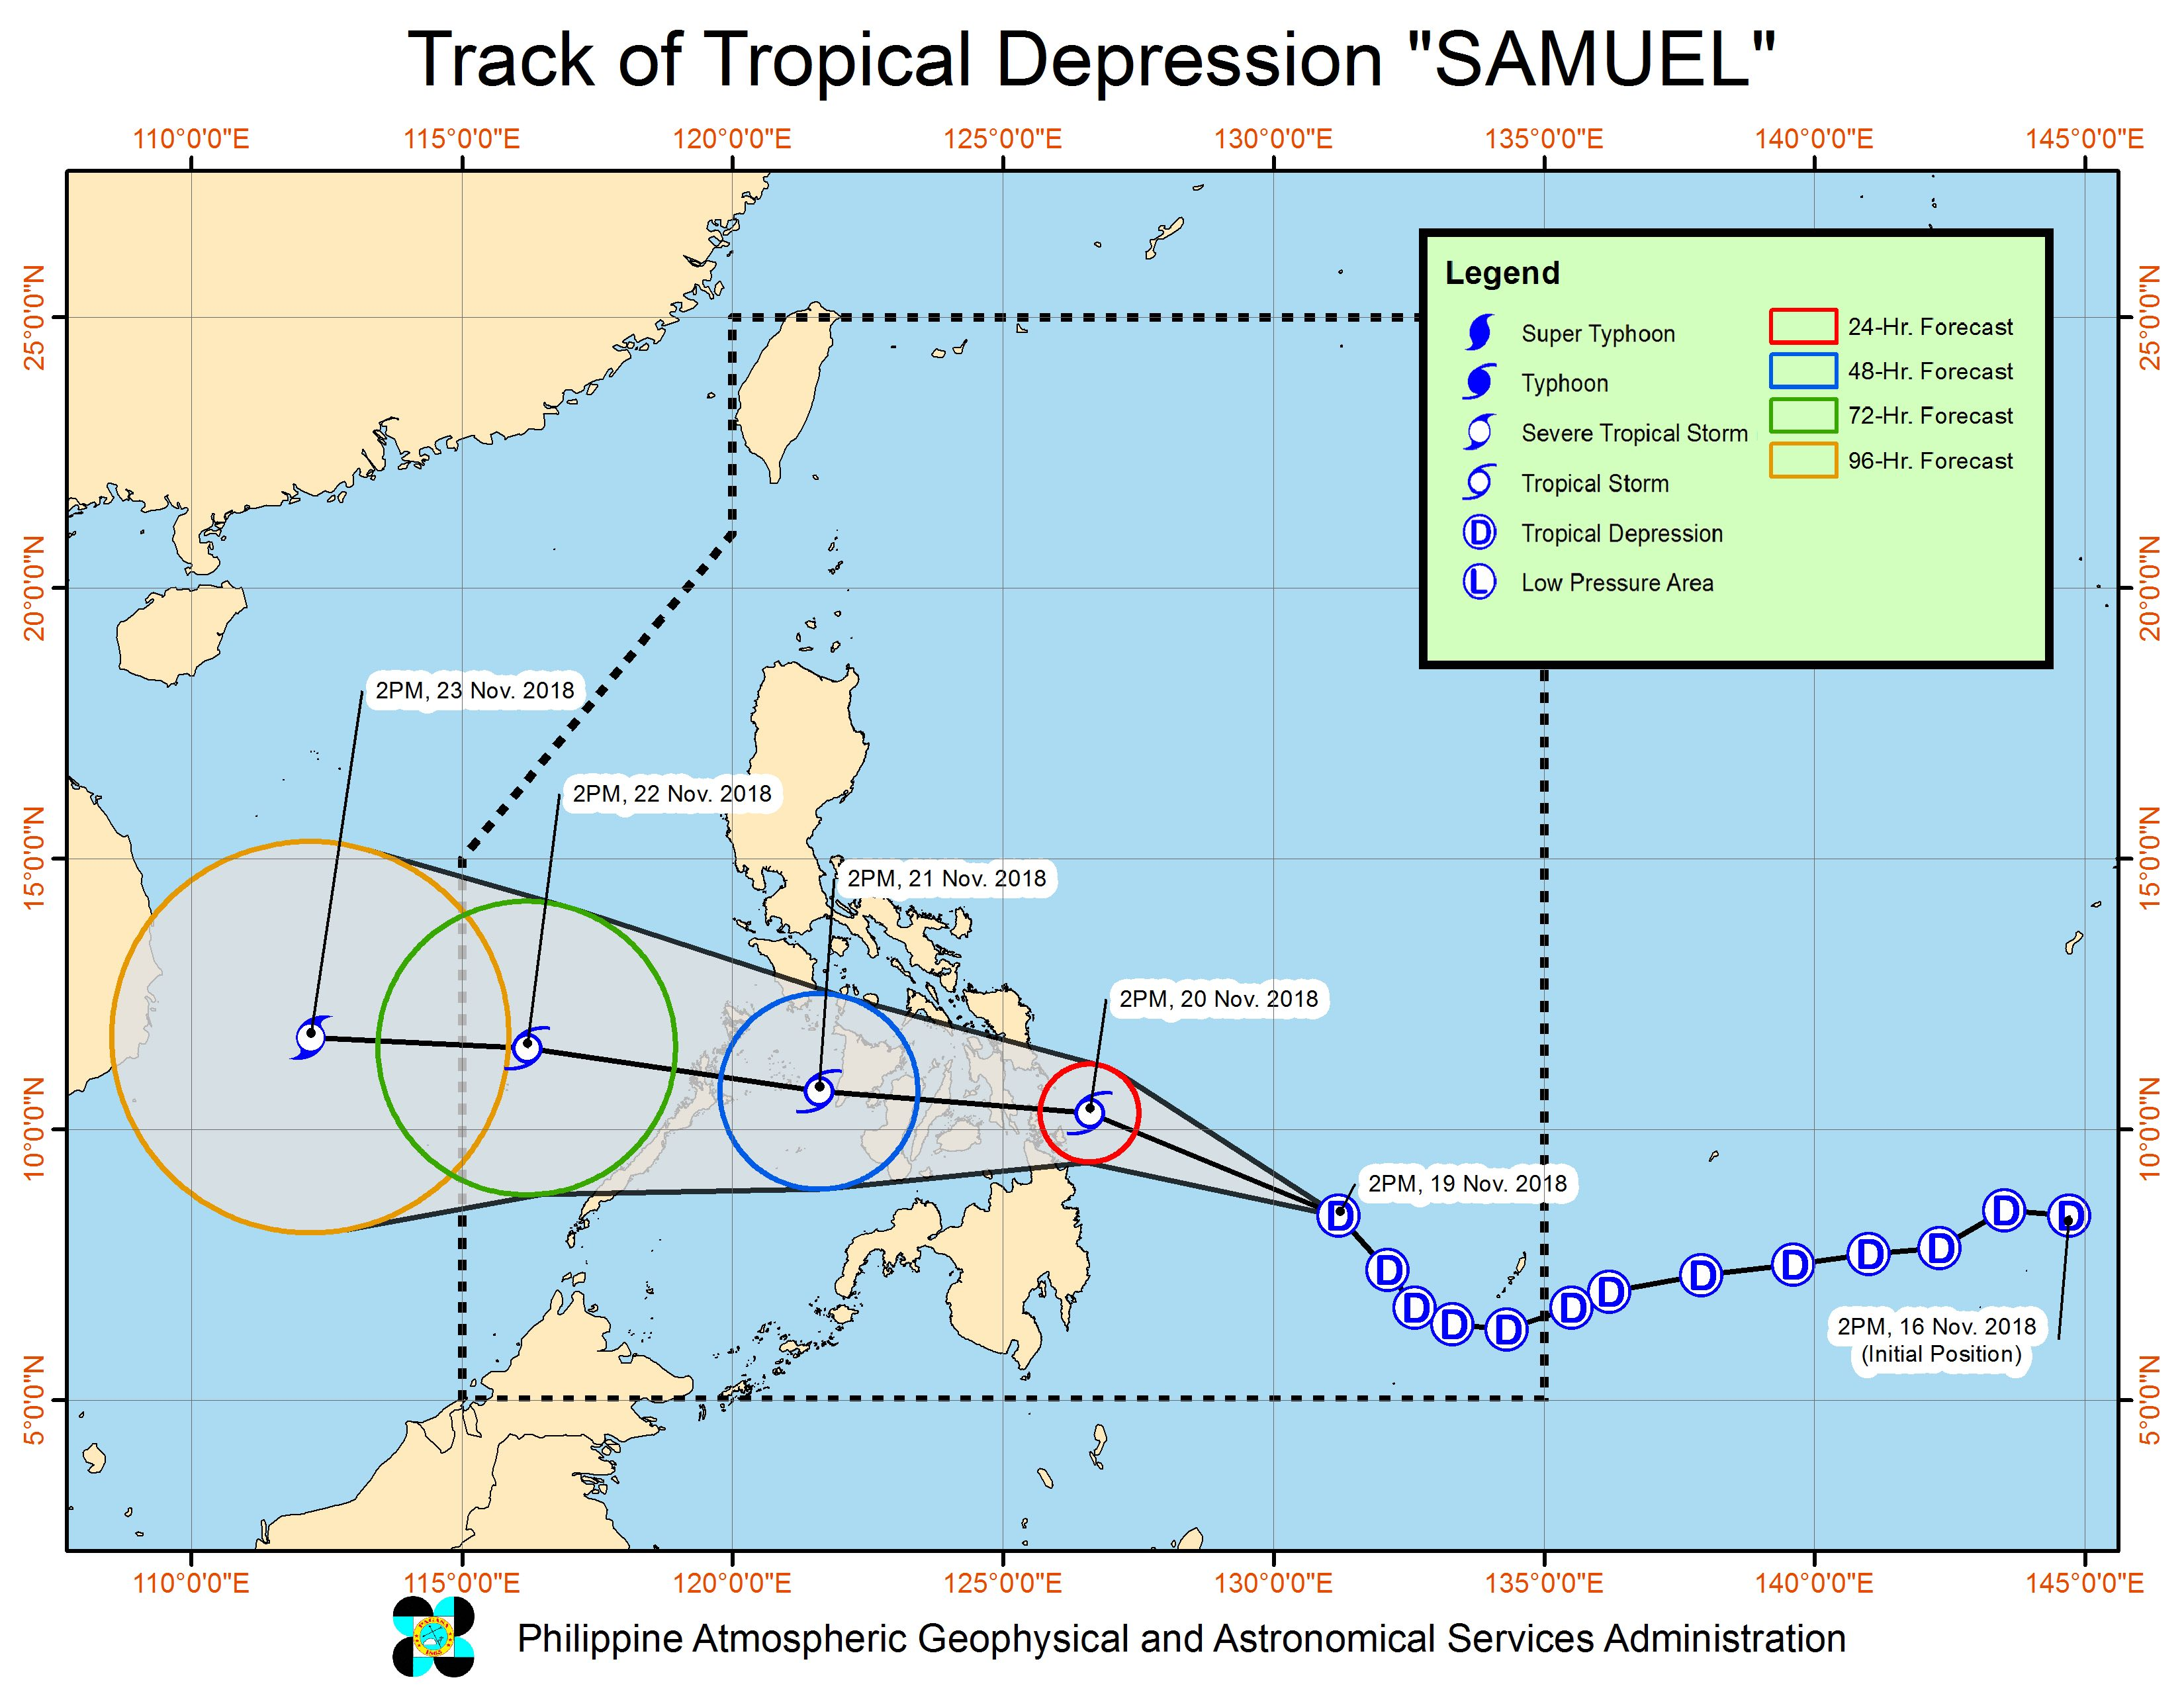 Forecast track of Tropical Depression Samuel as of November 19, 2018, 5 pm. Image from PAGASA